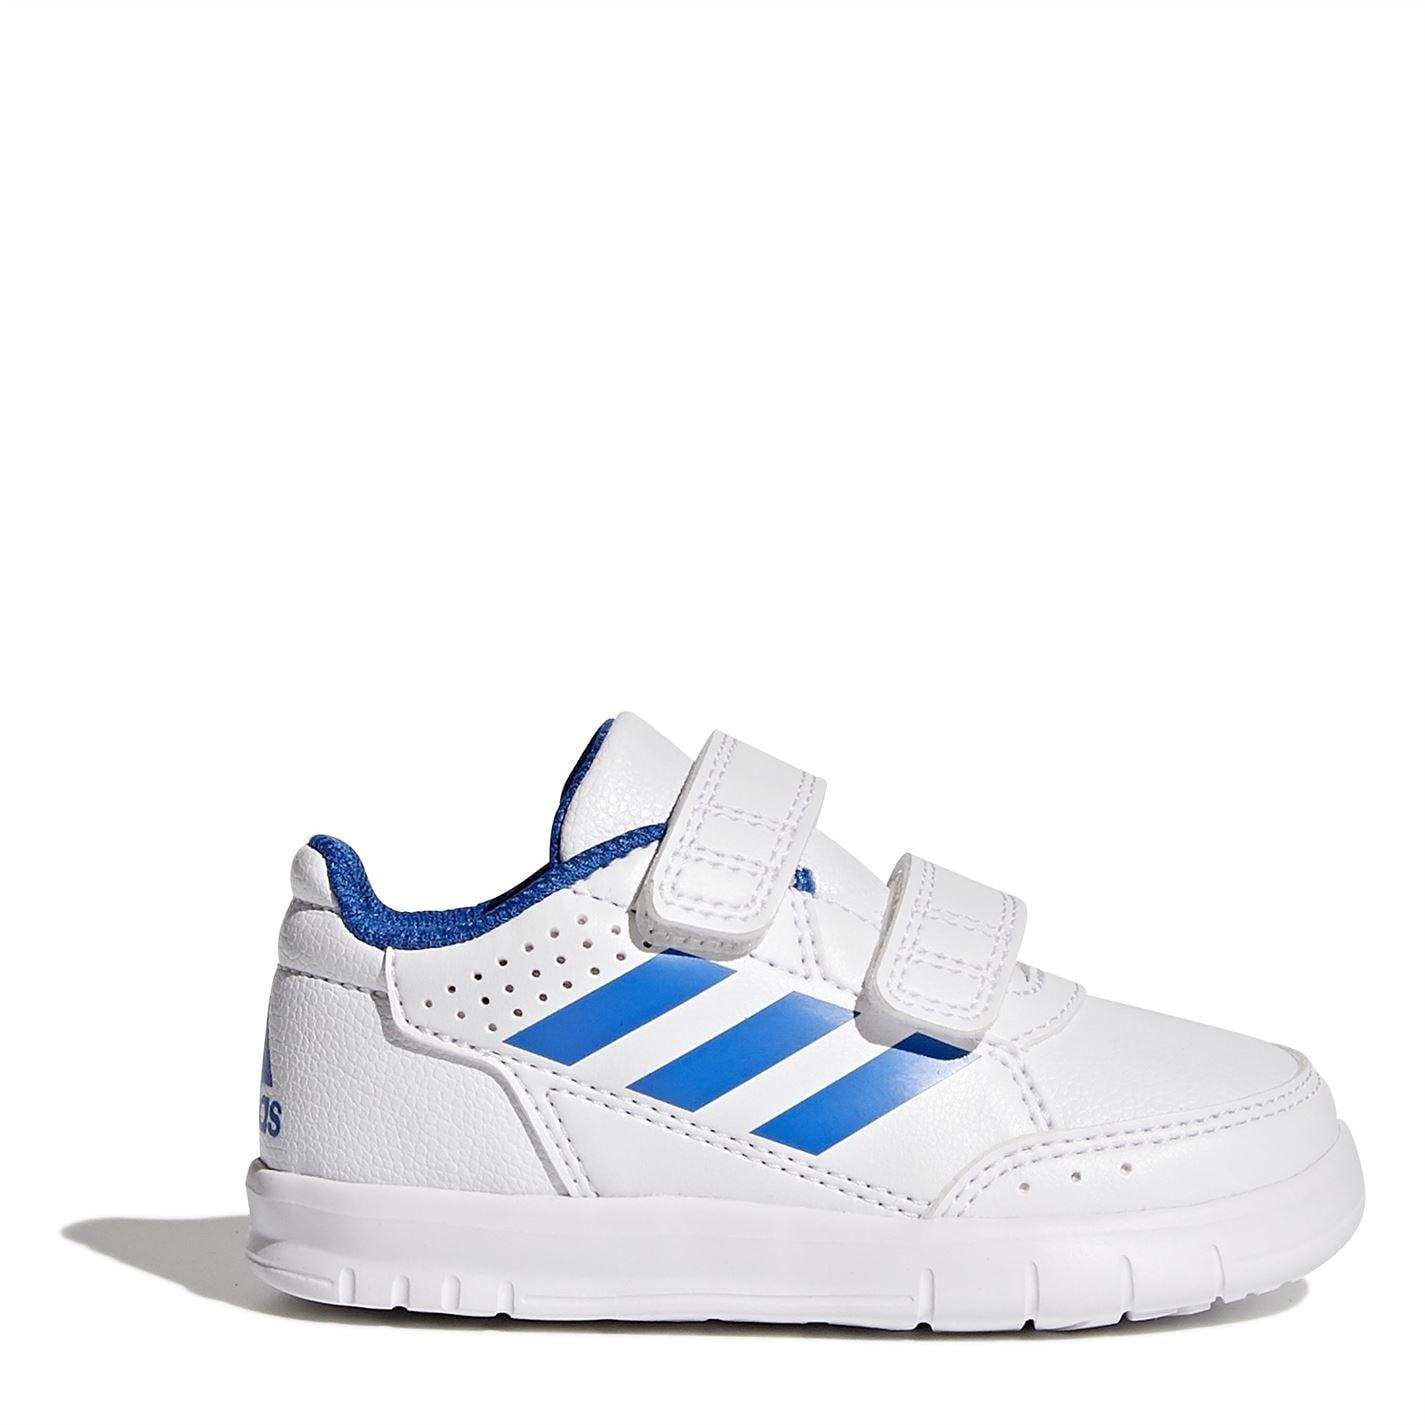 adidas AltaSport CF Trainers Infants White/Blue